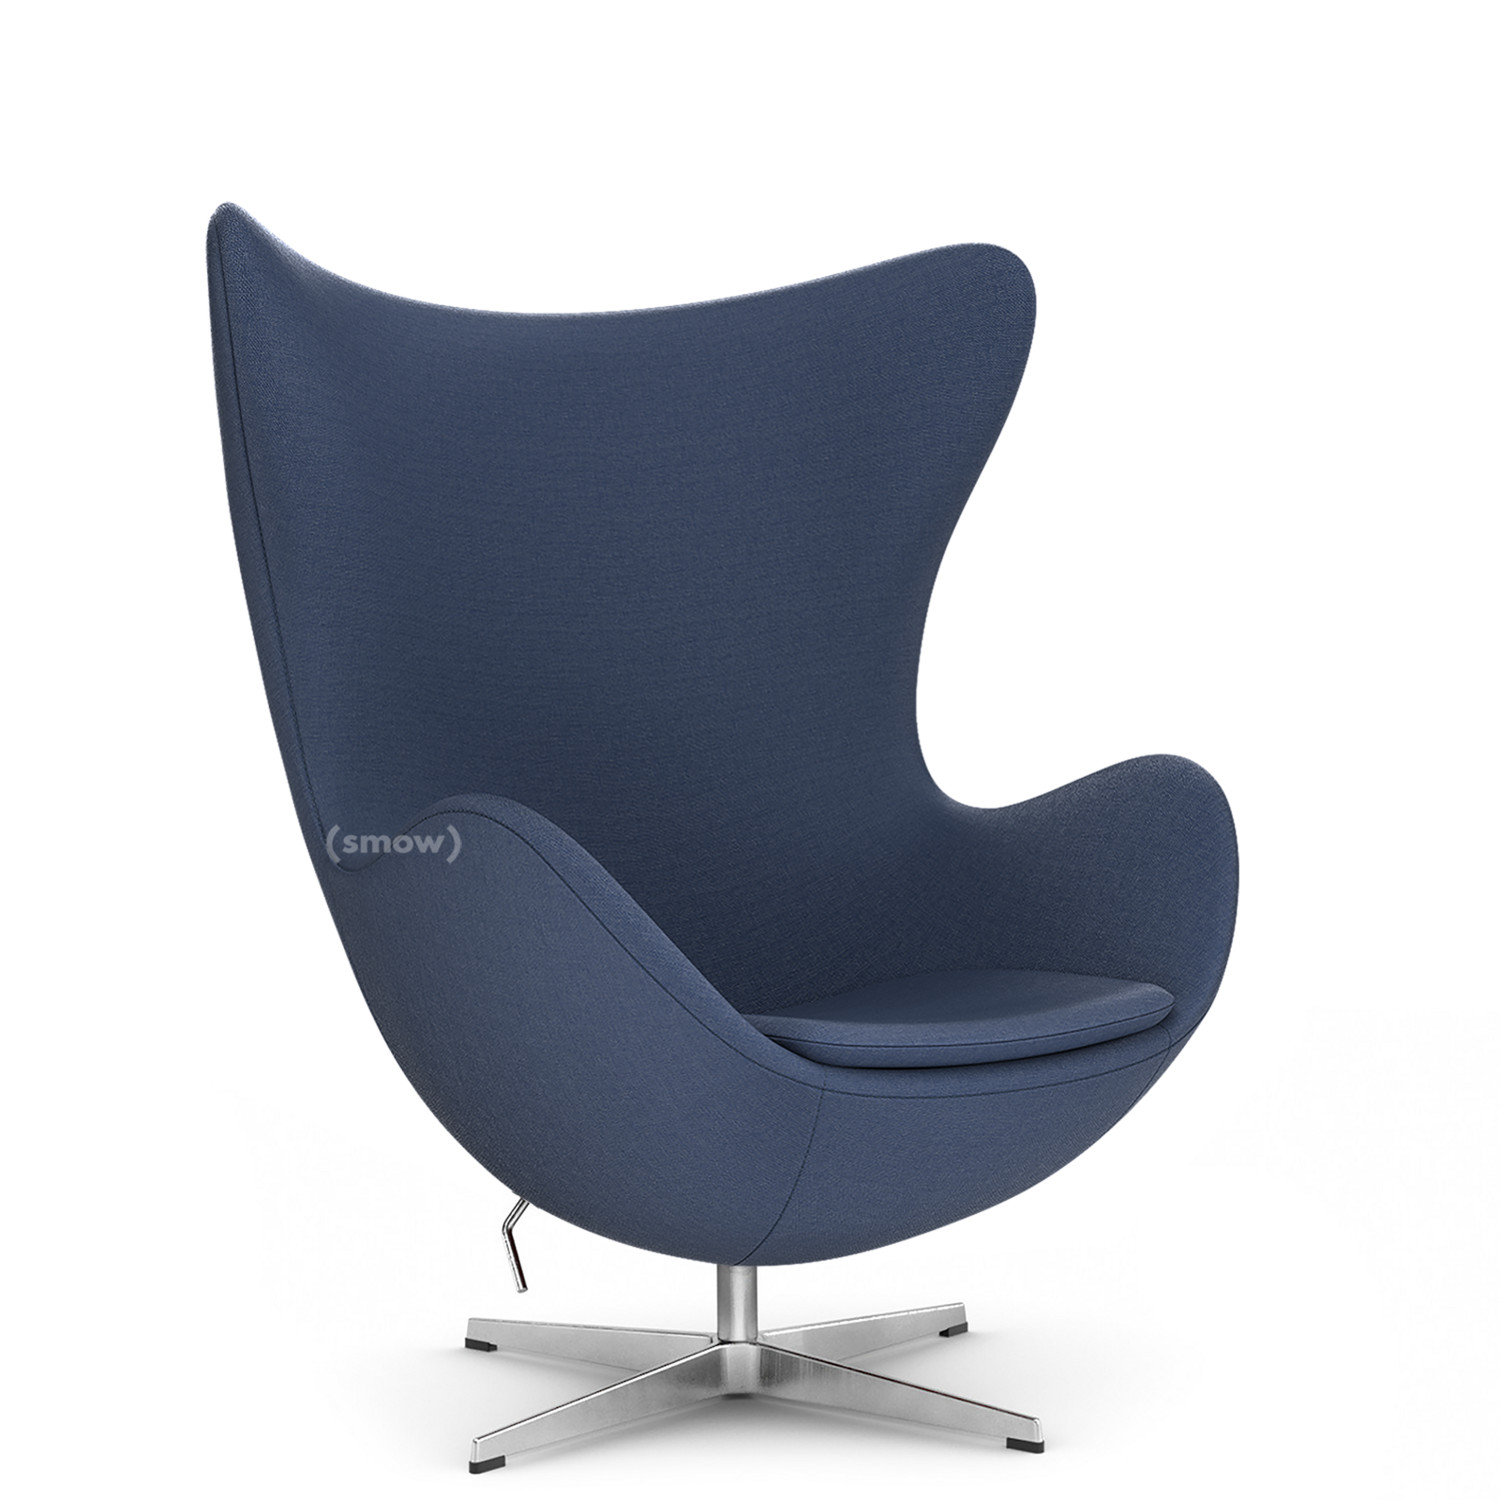 fritz hansen sessel ro 10, fritz hansen egg chair, fritz hansen colours, blue, without, Design ideen